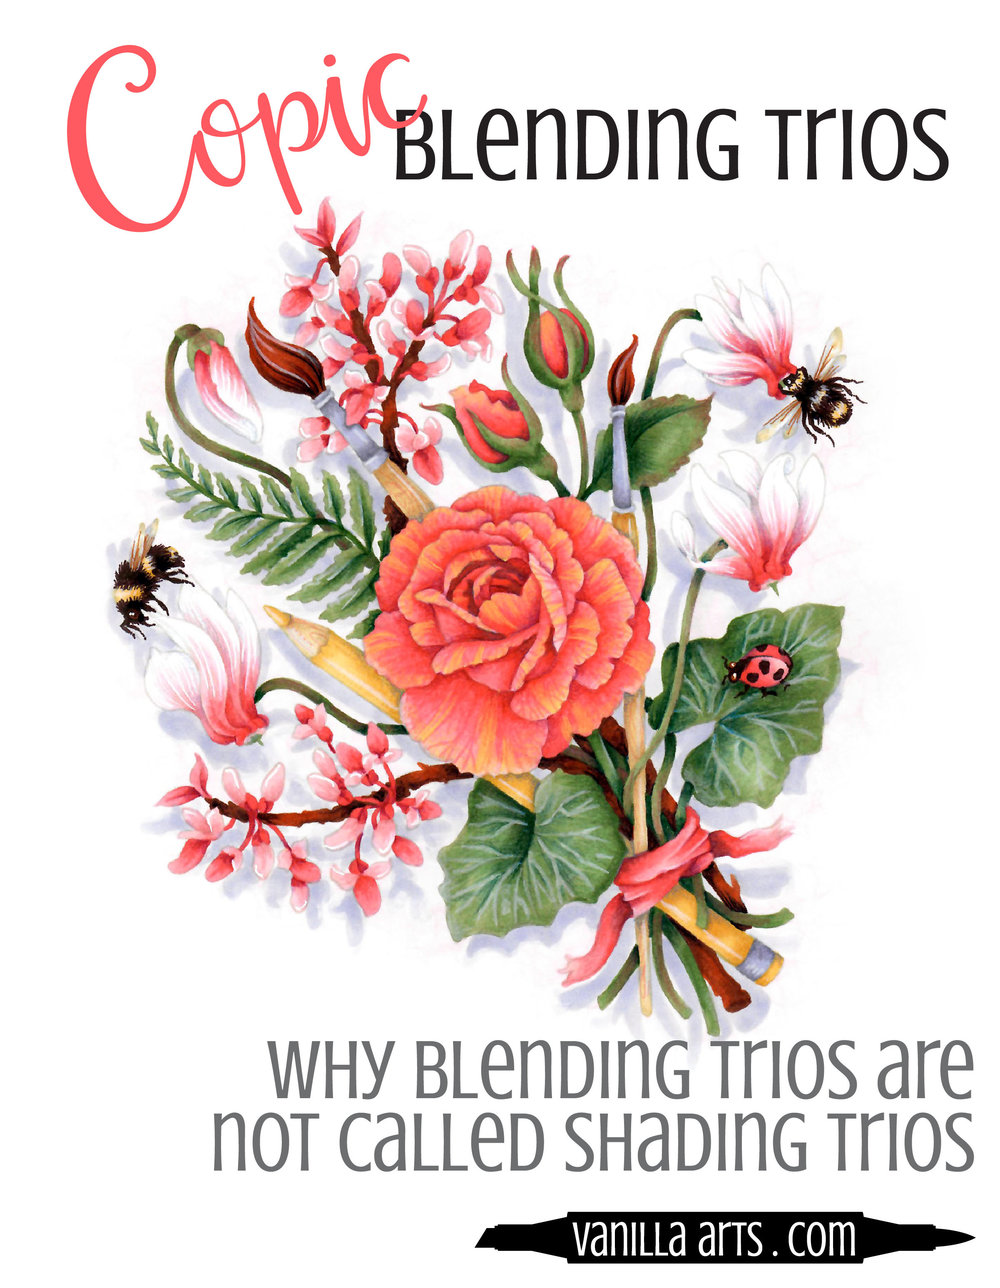 Copic Blending Trios do not really add realism to your coloring. Learn the method artists have been using for centuries- Color Sculpting. It's easier than you think and no math required! | VanillaArts.com